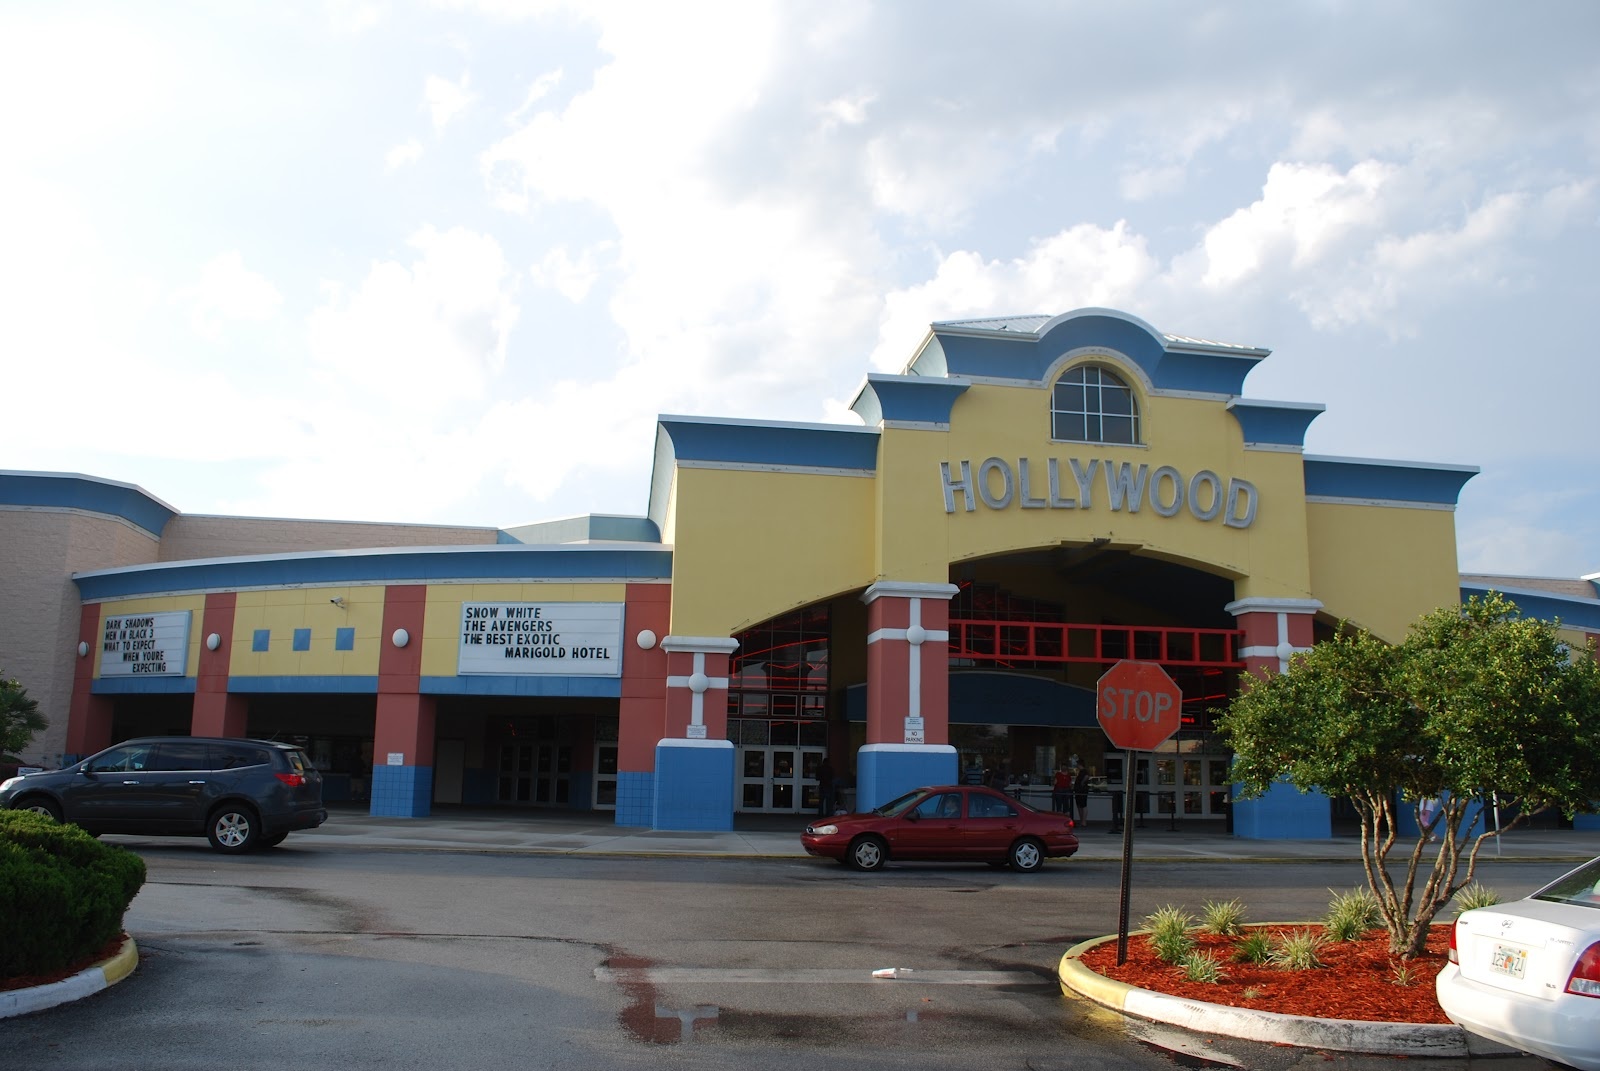 Movies & Showtimes for Regal Hollywood Stadium 16 & IMAX - Ocala